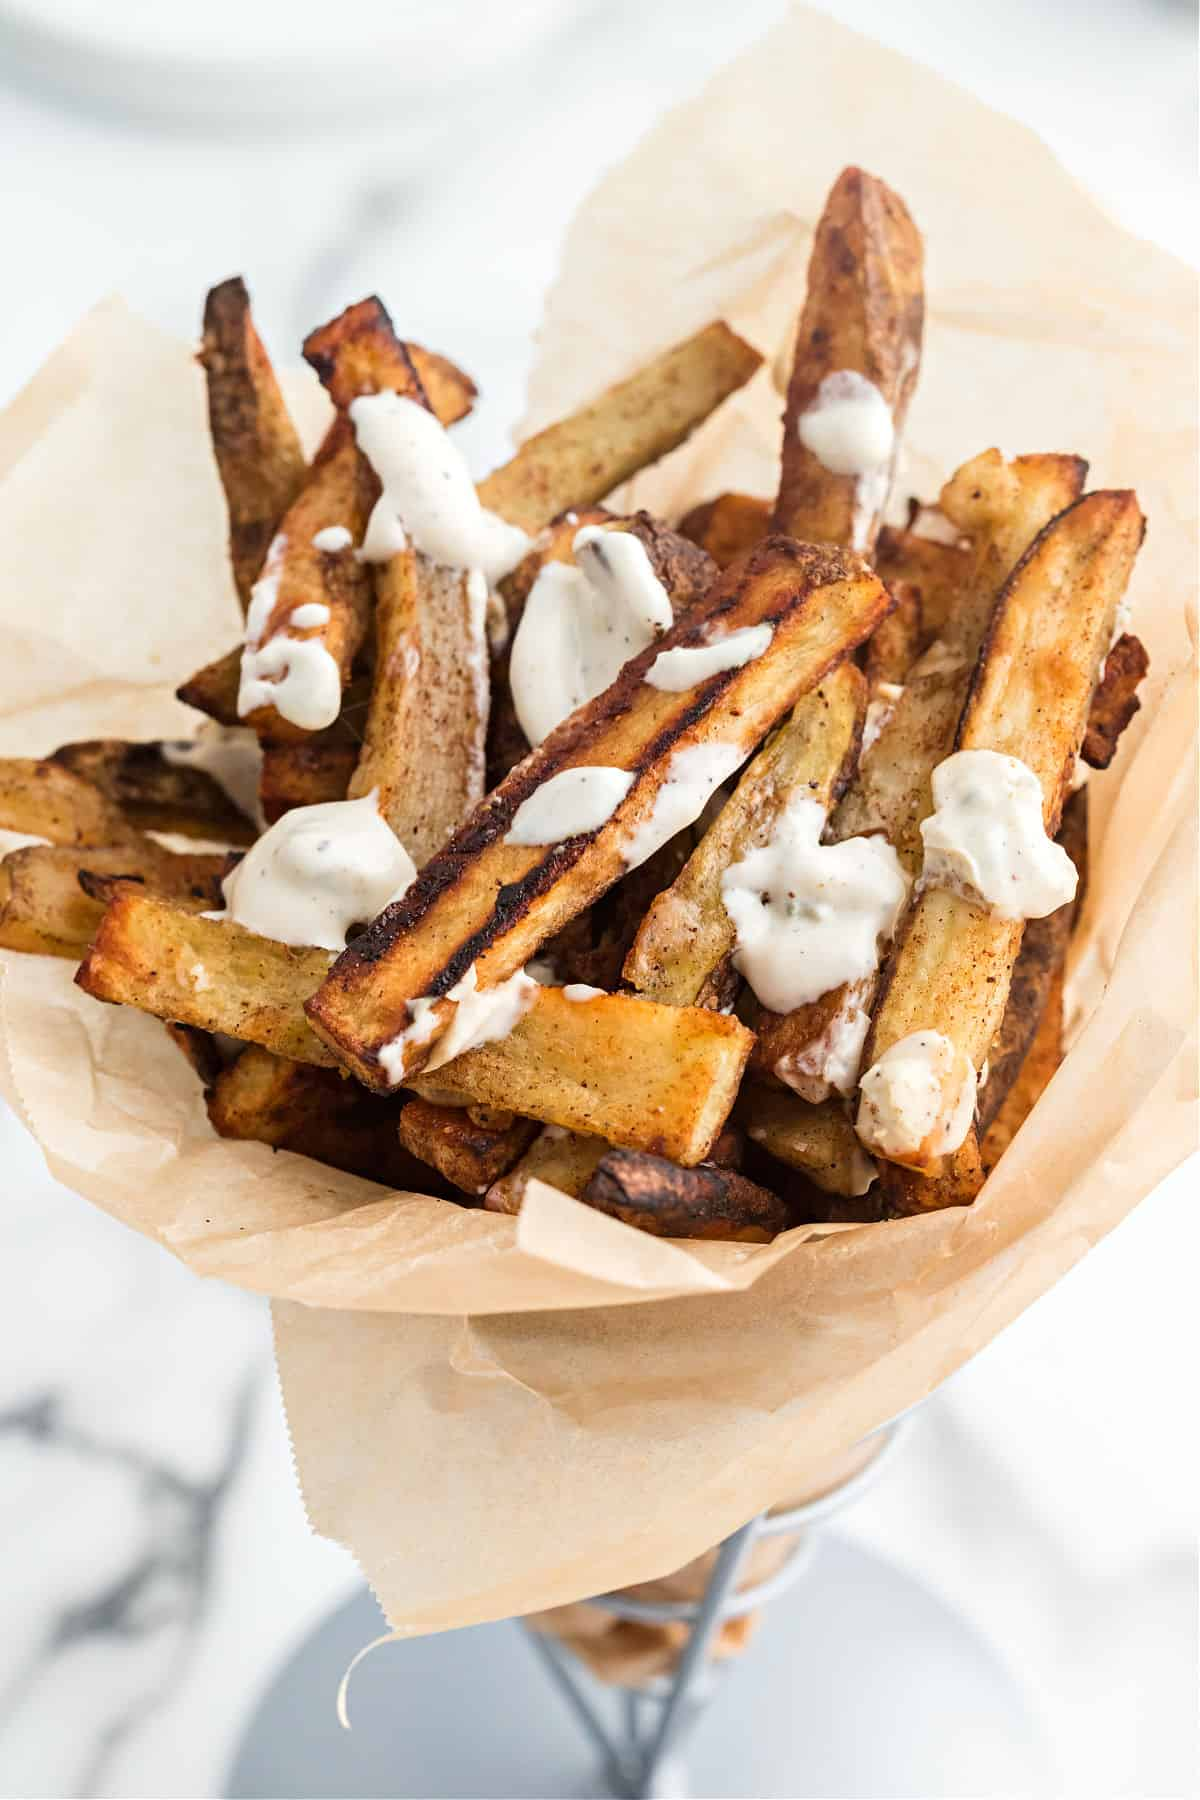 Baked french fries with bleu cheese dressing in a basket for serving.